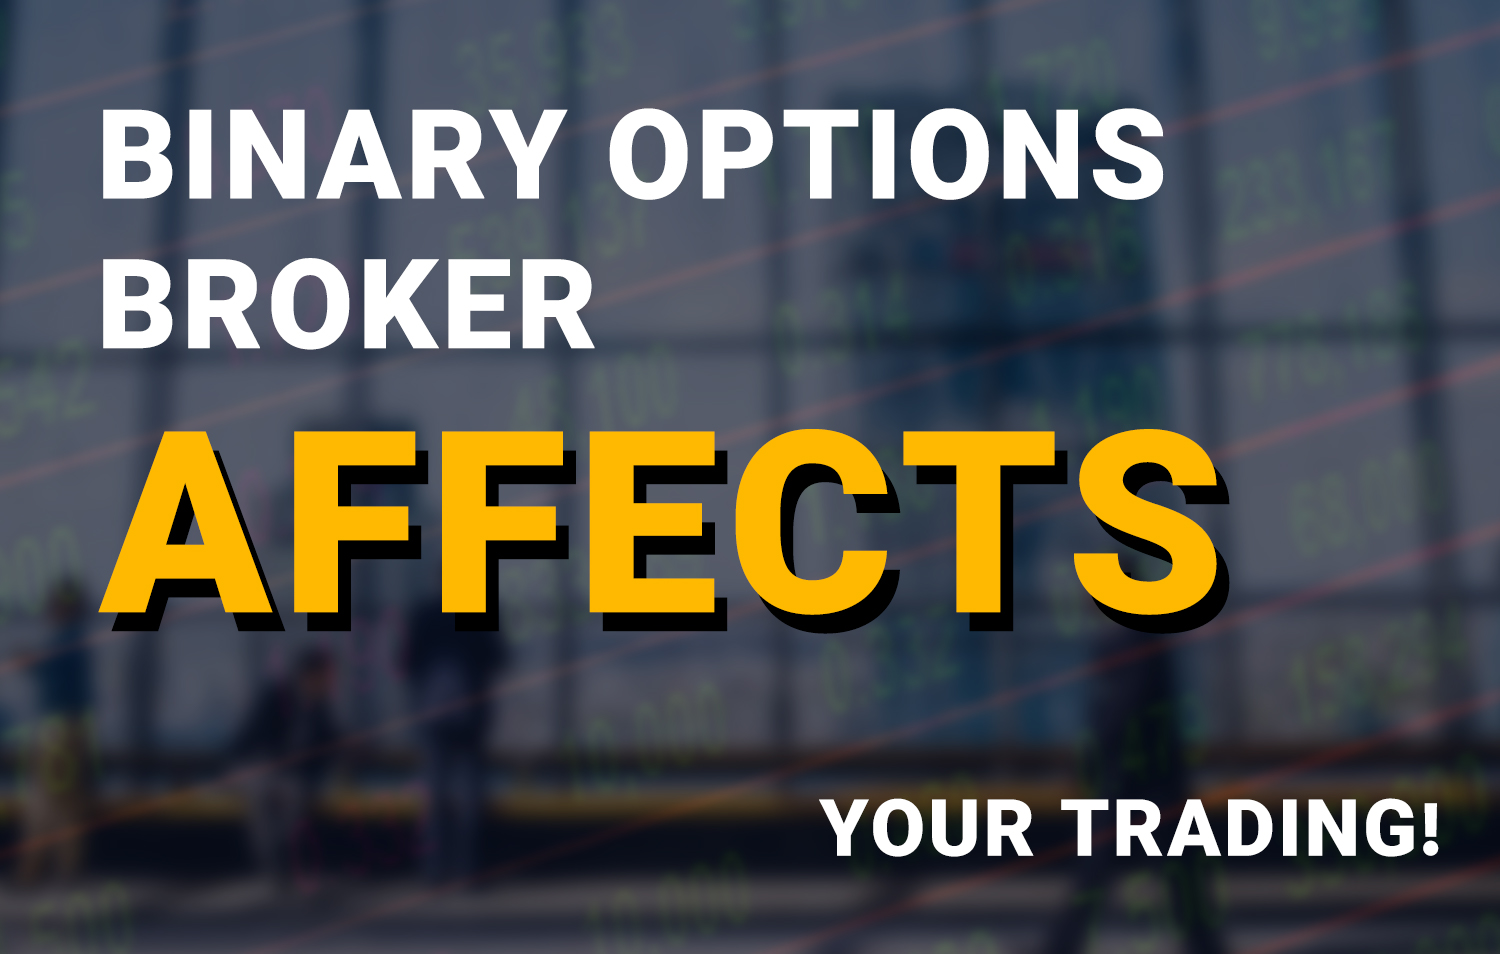 Your Binary Options broker affects your trading!